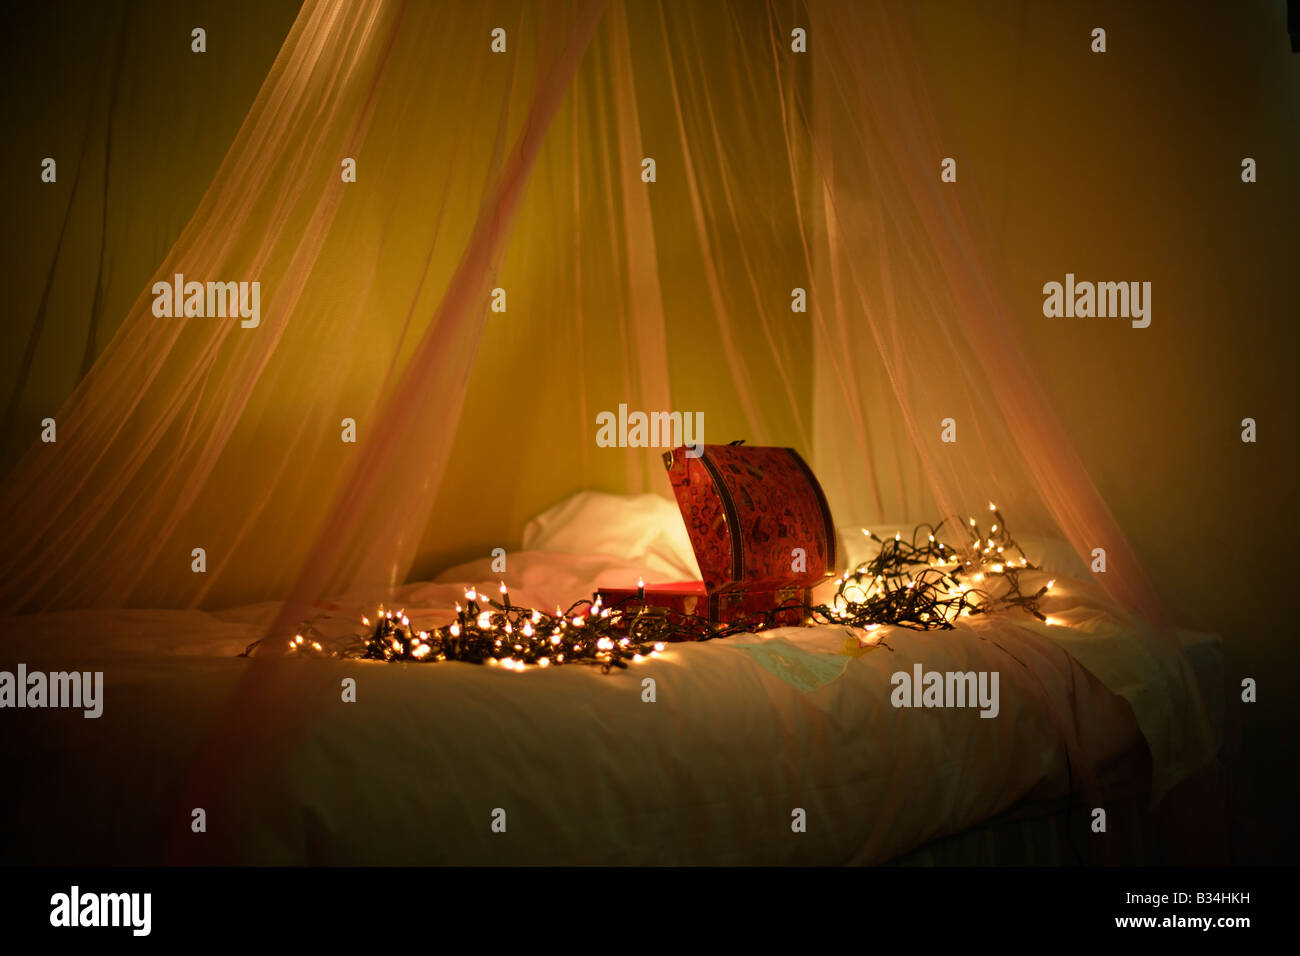 Open box with lights on bed with canopy - Stock Image